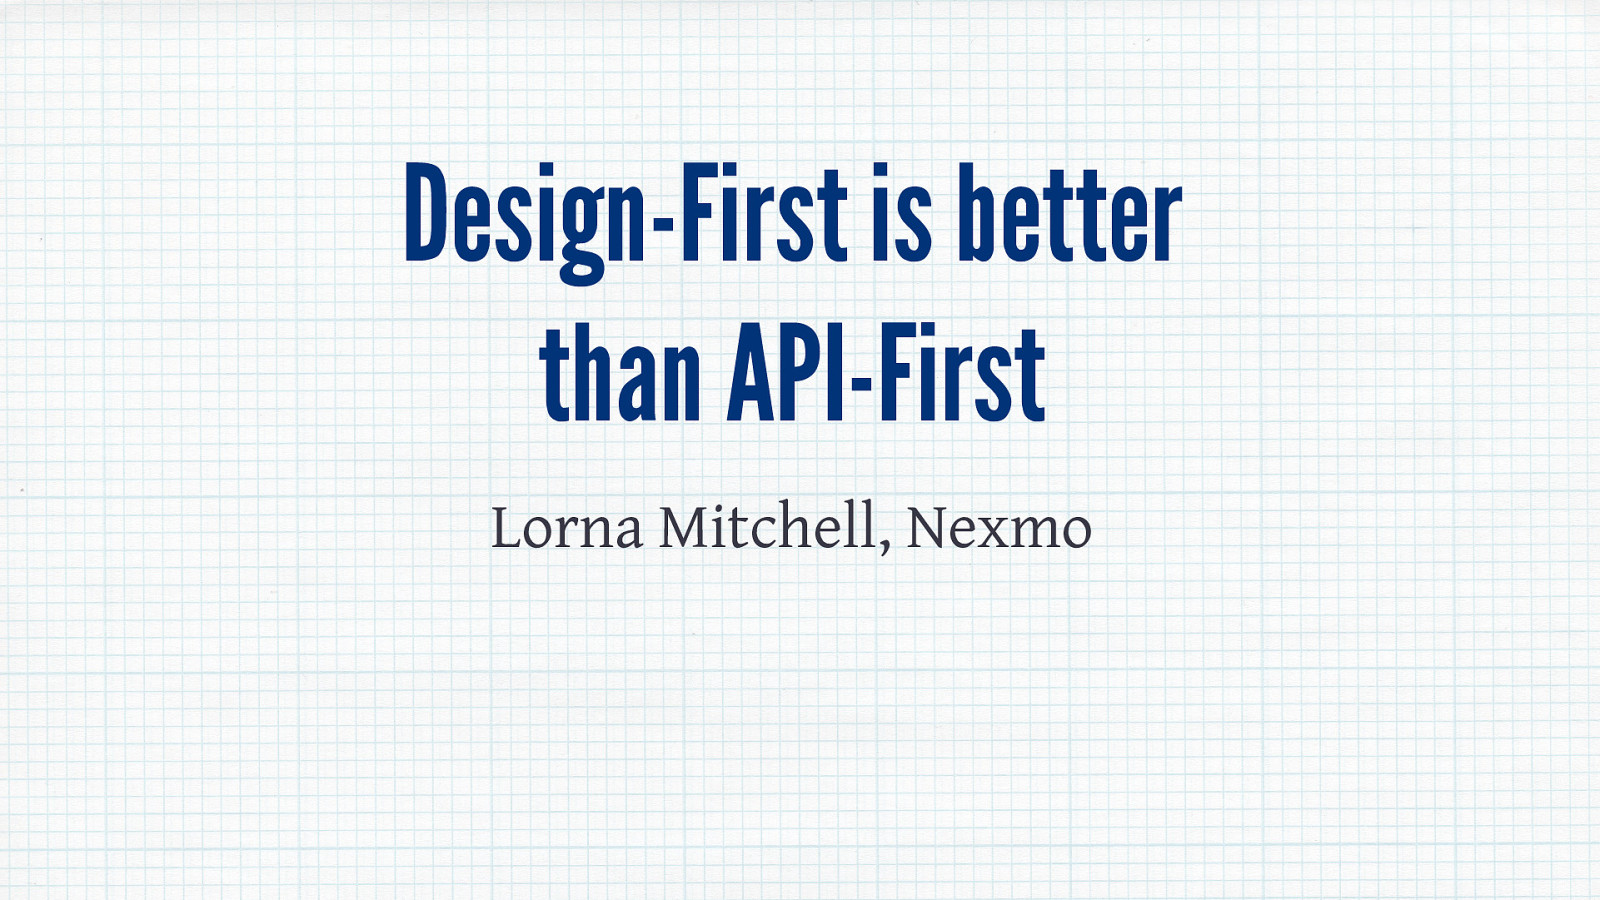 Design First is Better than API First